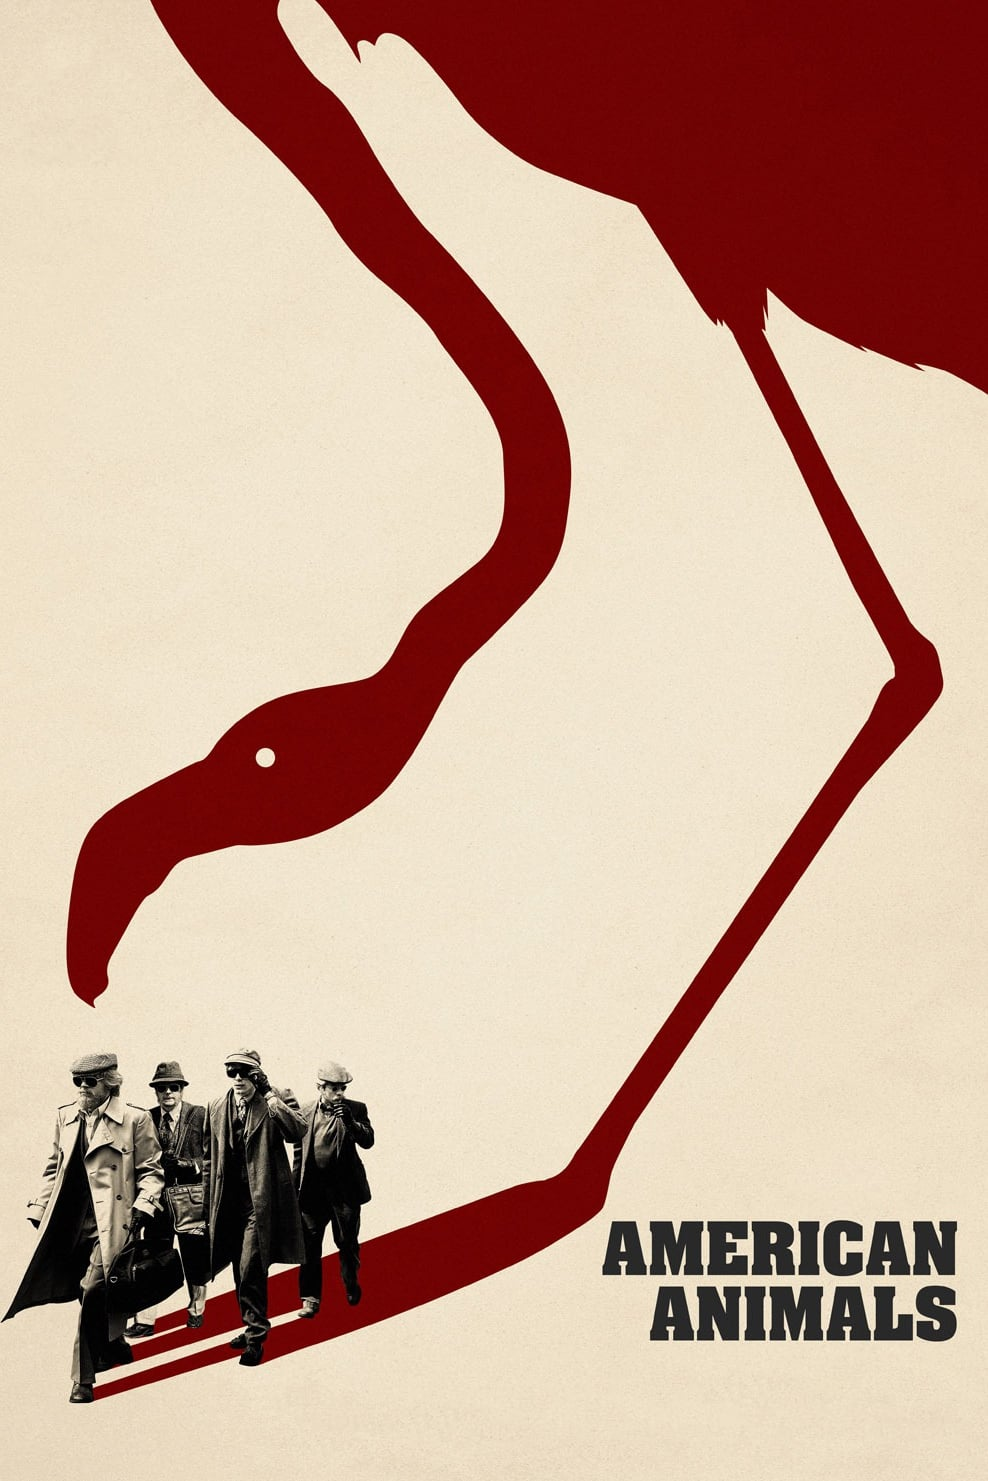 image for American Animals